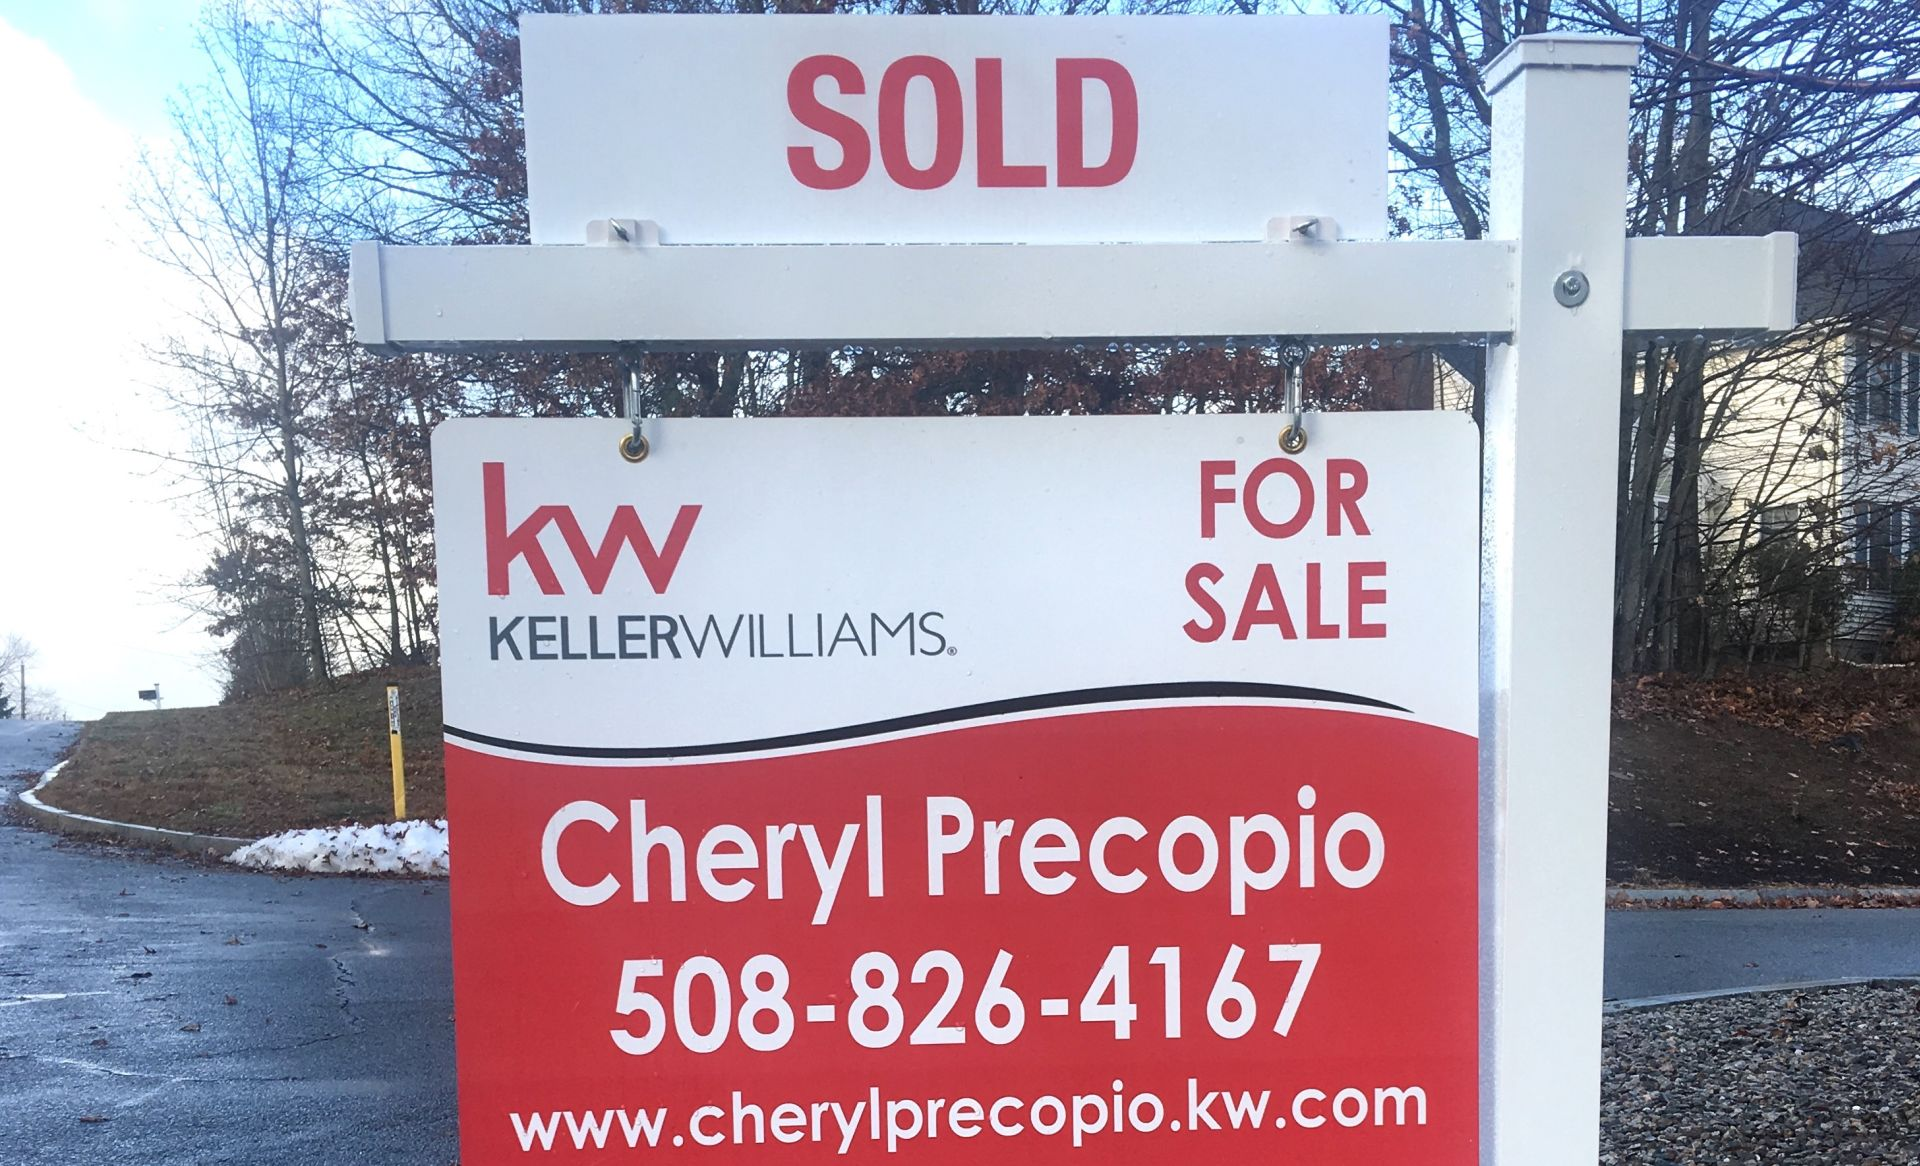 RECENTLY SOLD HOMES!!